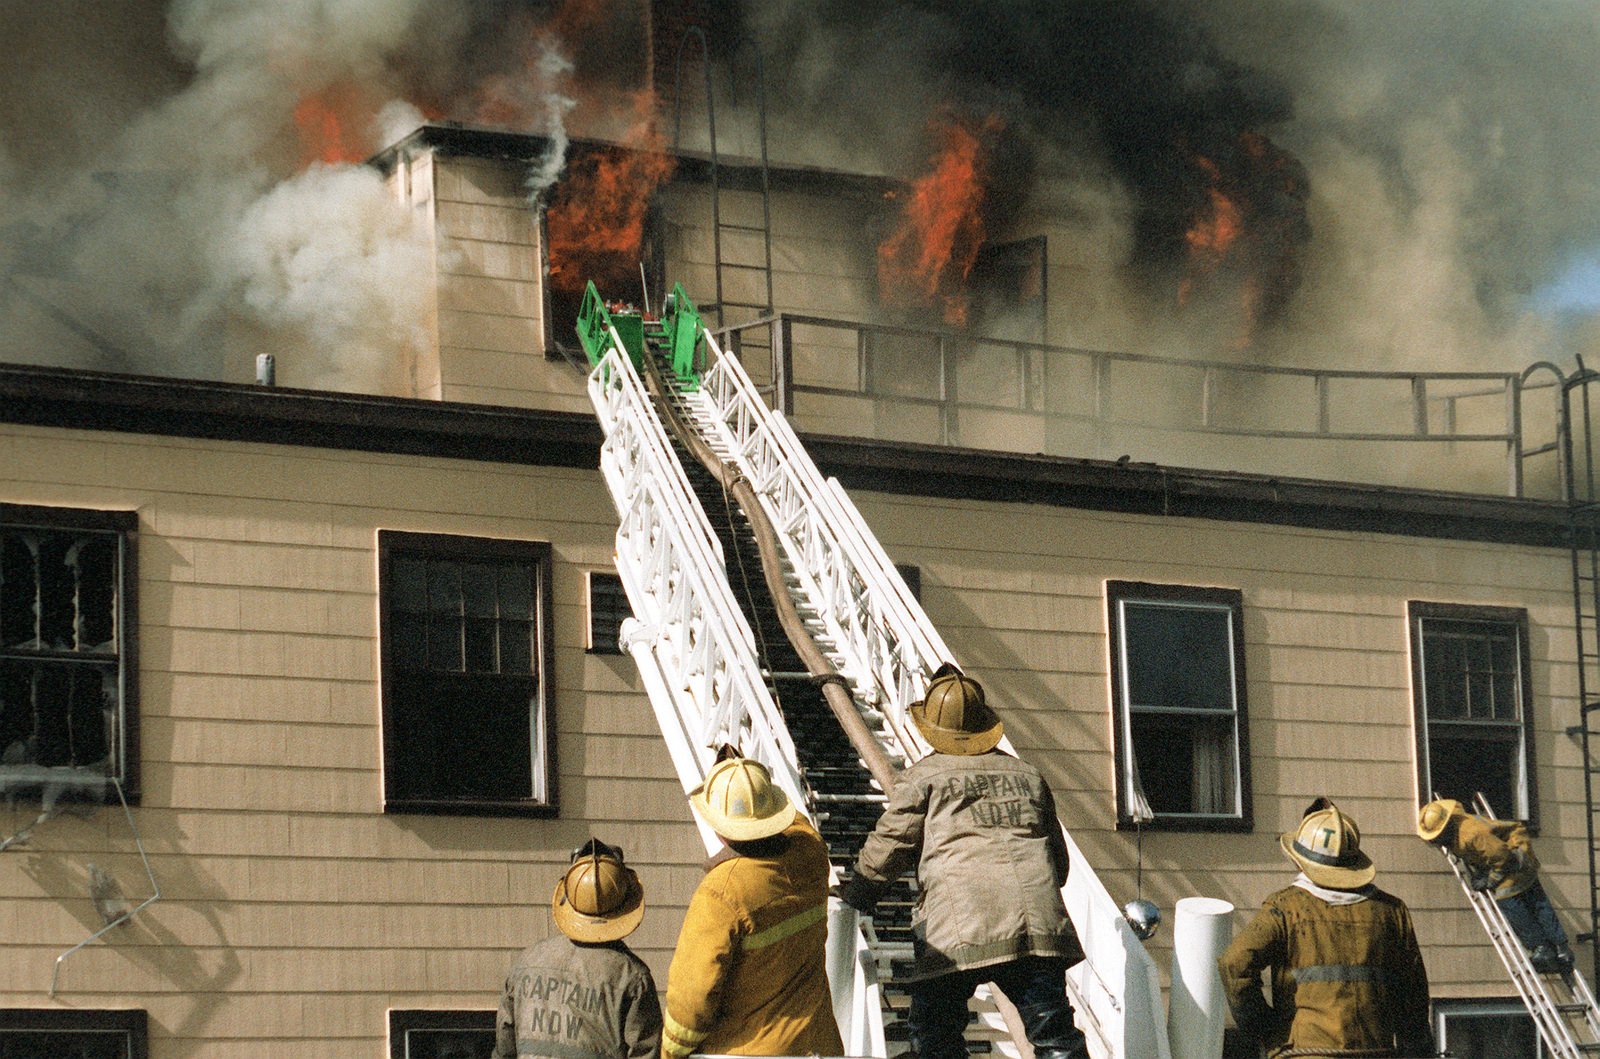 Firemen raise a fire-engine tower ladder toward one of the windows of the blazing CHIEF of Chaplains Building